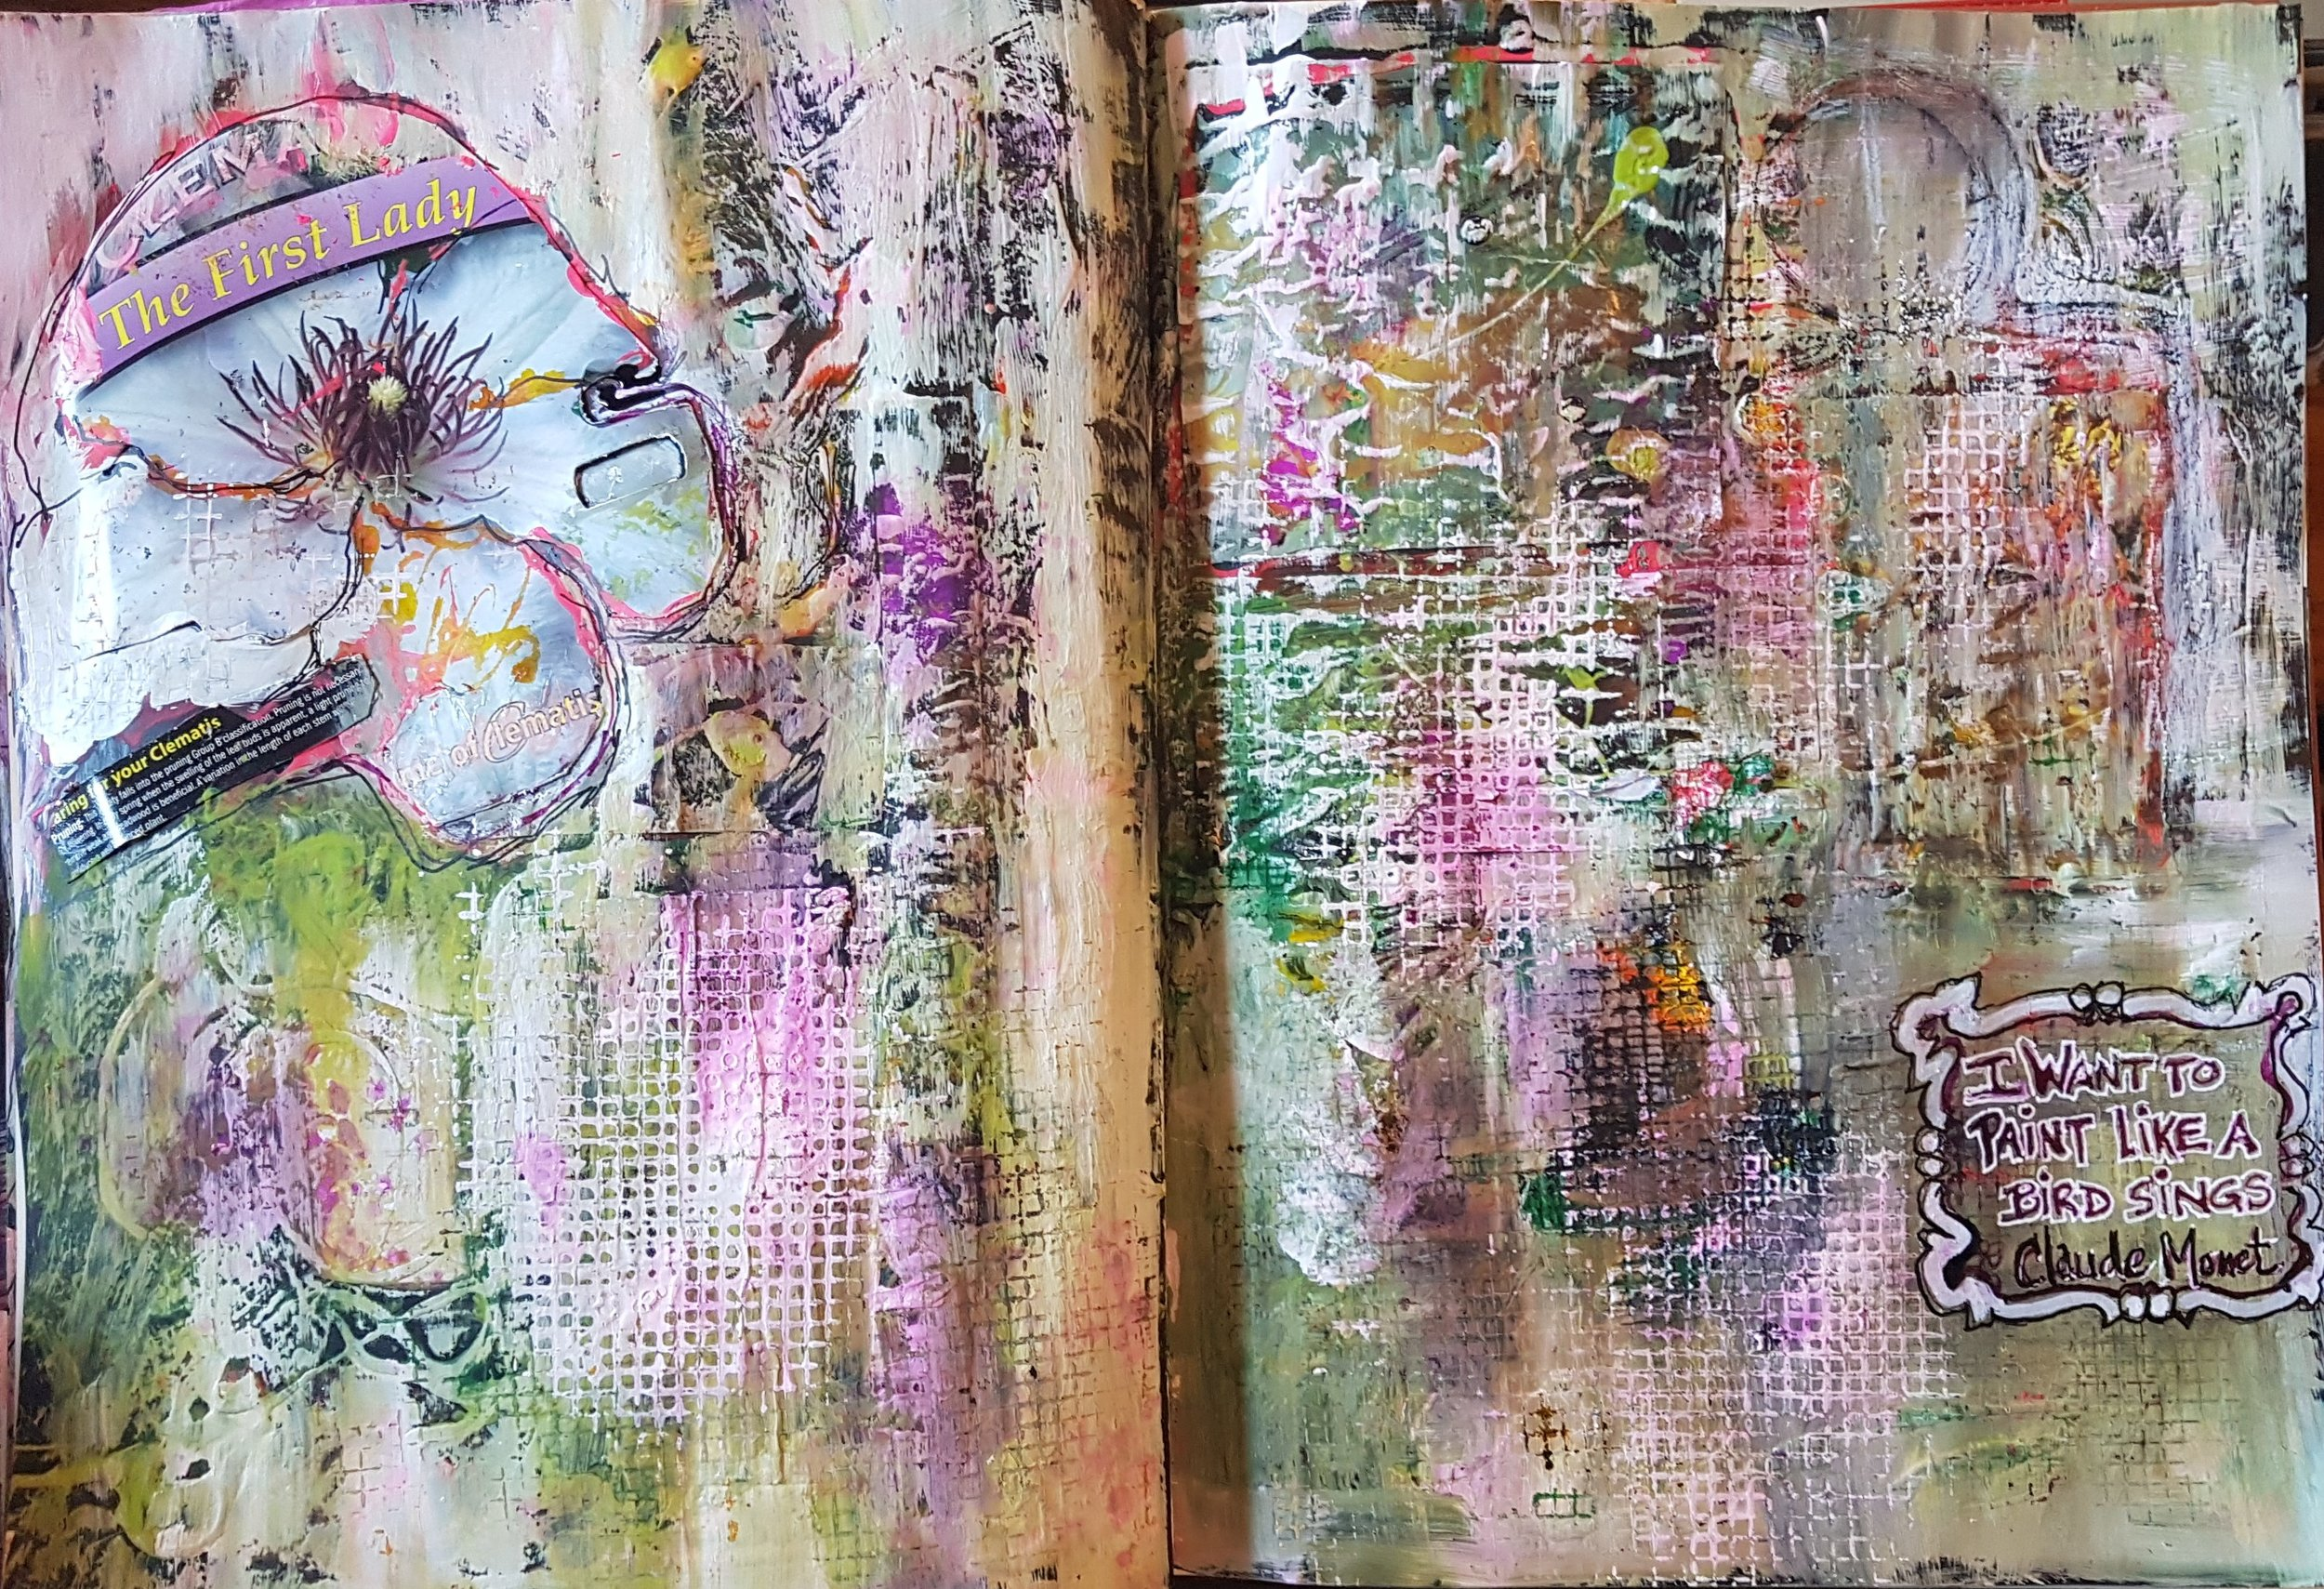 Journal Three I Want To Paint Like A Bird Sings Claude Monet May 2018 .jpg